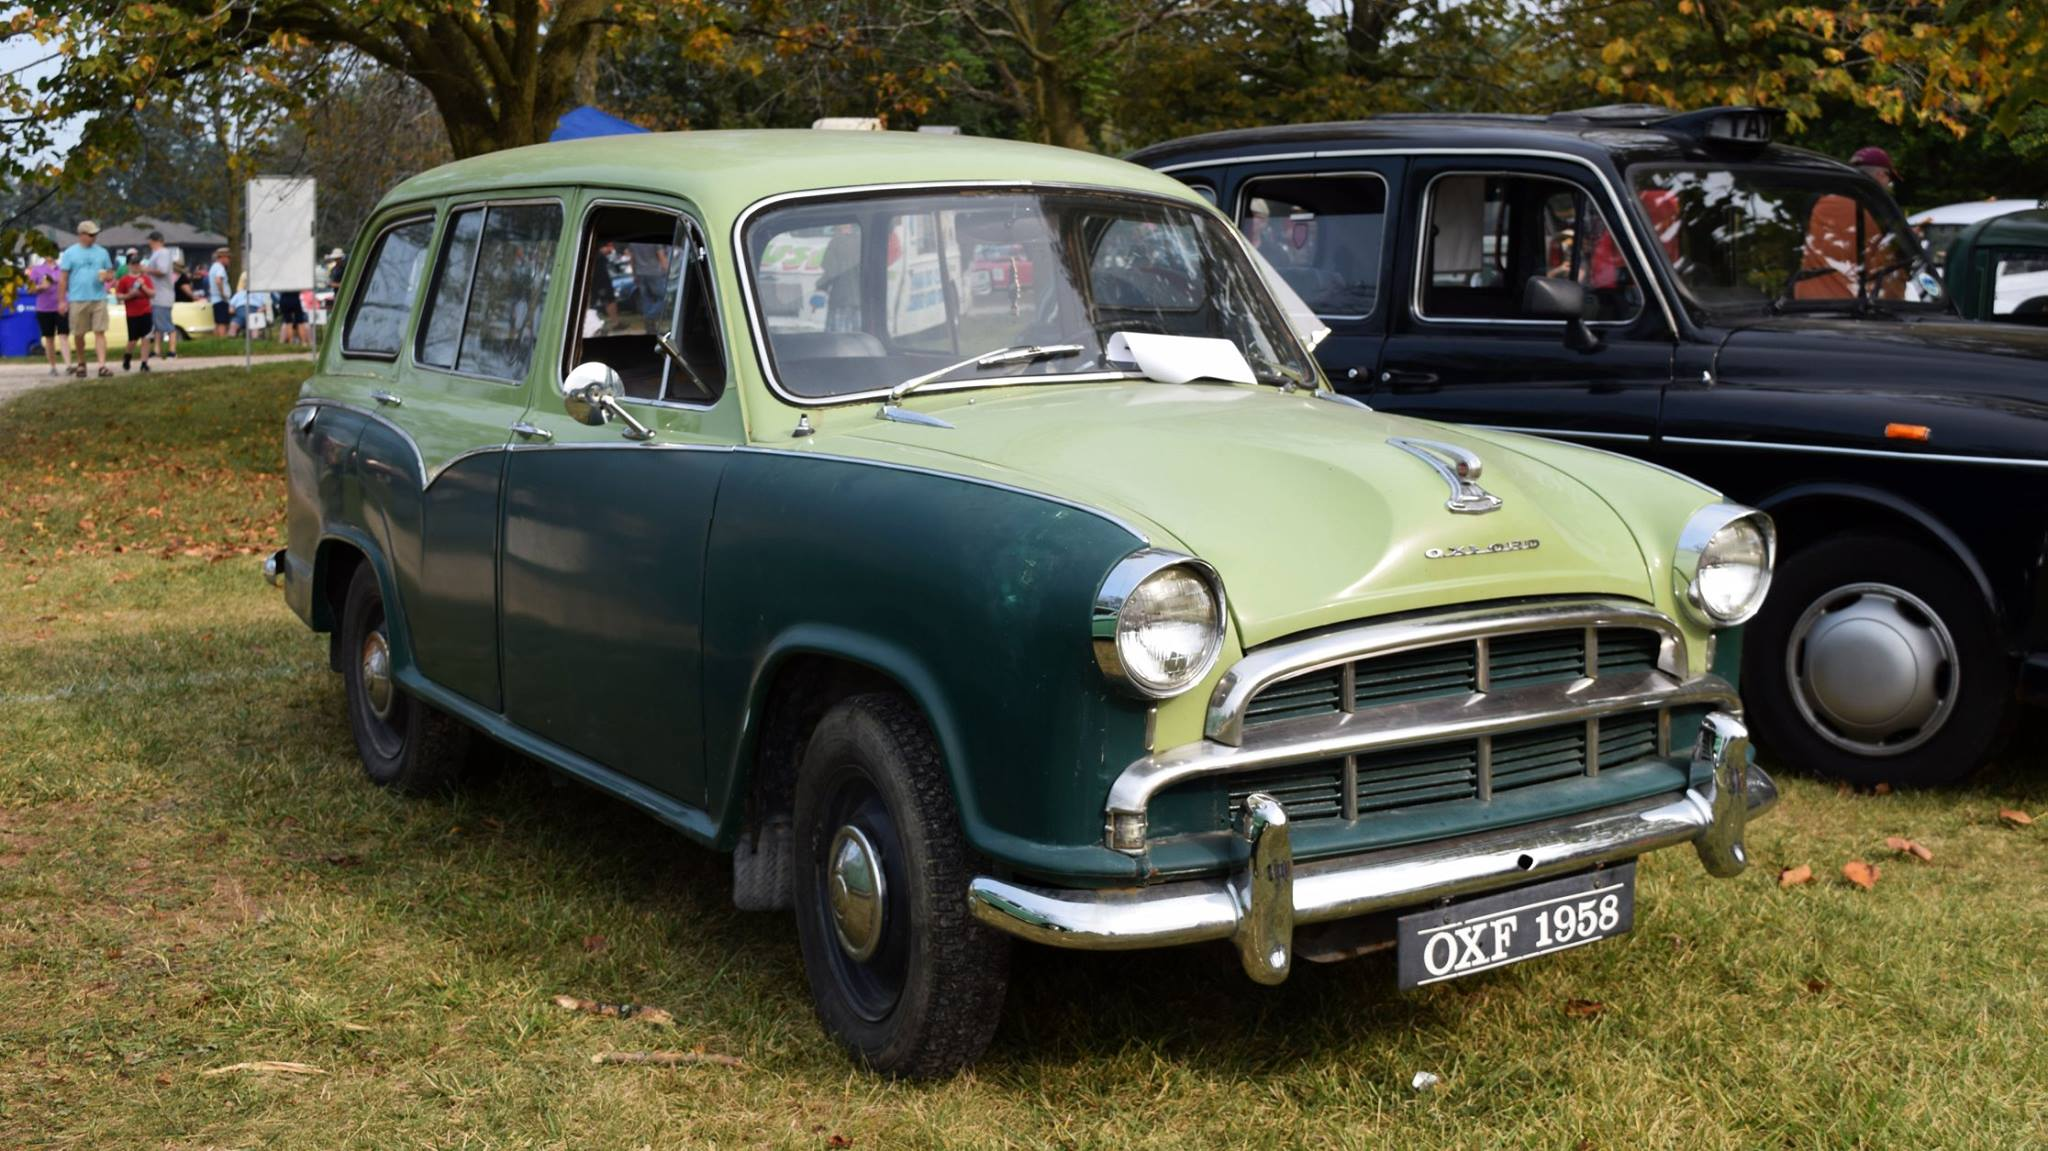 20170917-bcd-1958 Morris Oxford Traveller